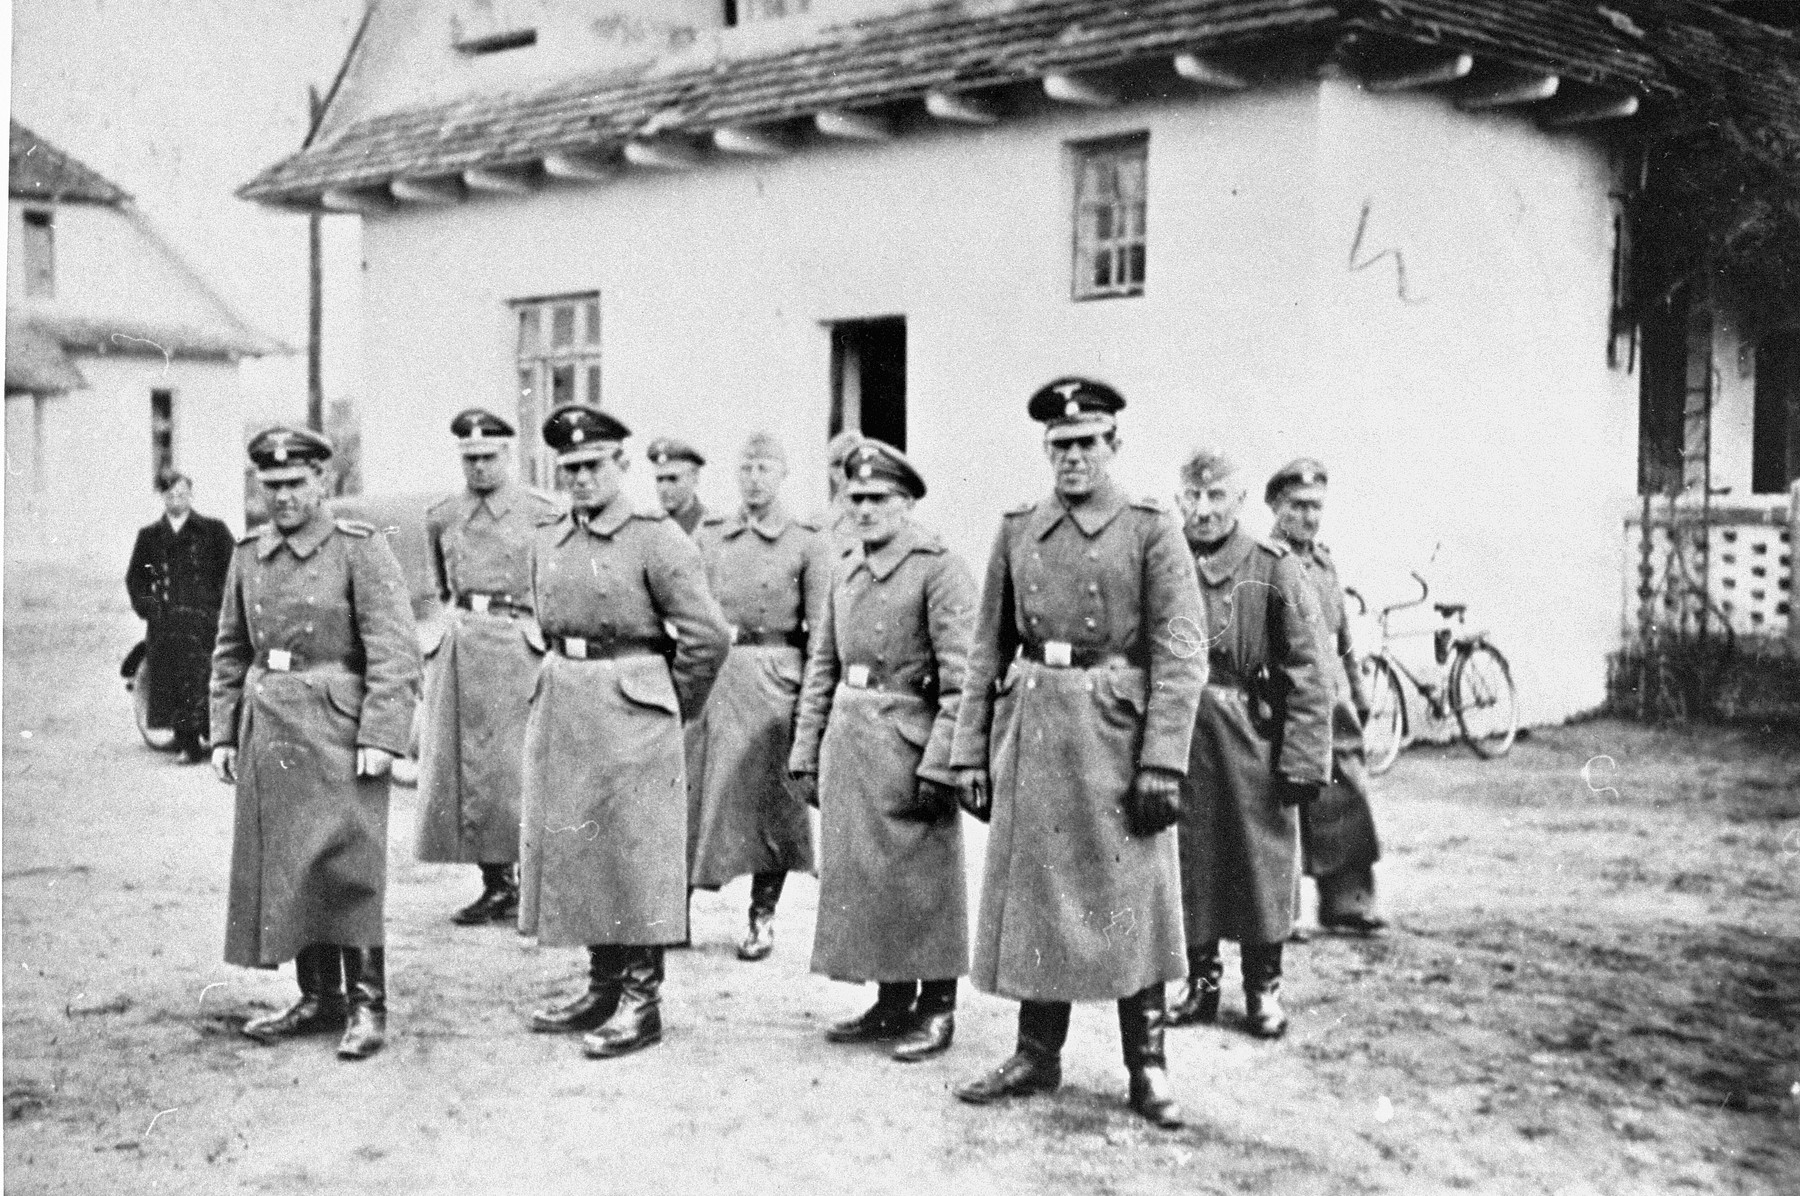 SS guards stand in formation outside the commandant's house near the Belzec concentration camp.    Pictured (in the front row from right to left) are:  SS Rottenfuehrer Heinrich Barbl and SS Oberwachmeister Artur Dachsel; (second row) SS Hauptscharfuehrer Lorenz Hackenholt, SS Unterscharfuehrer Ernst Zierke, SS Untersturmfuehrer Karl Gringers (front), and SS Untersturmfuehrer Fritz Tauscher (second from the left).